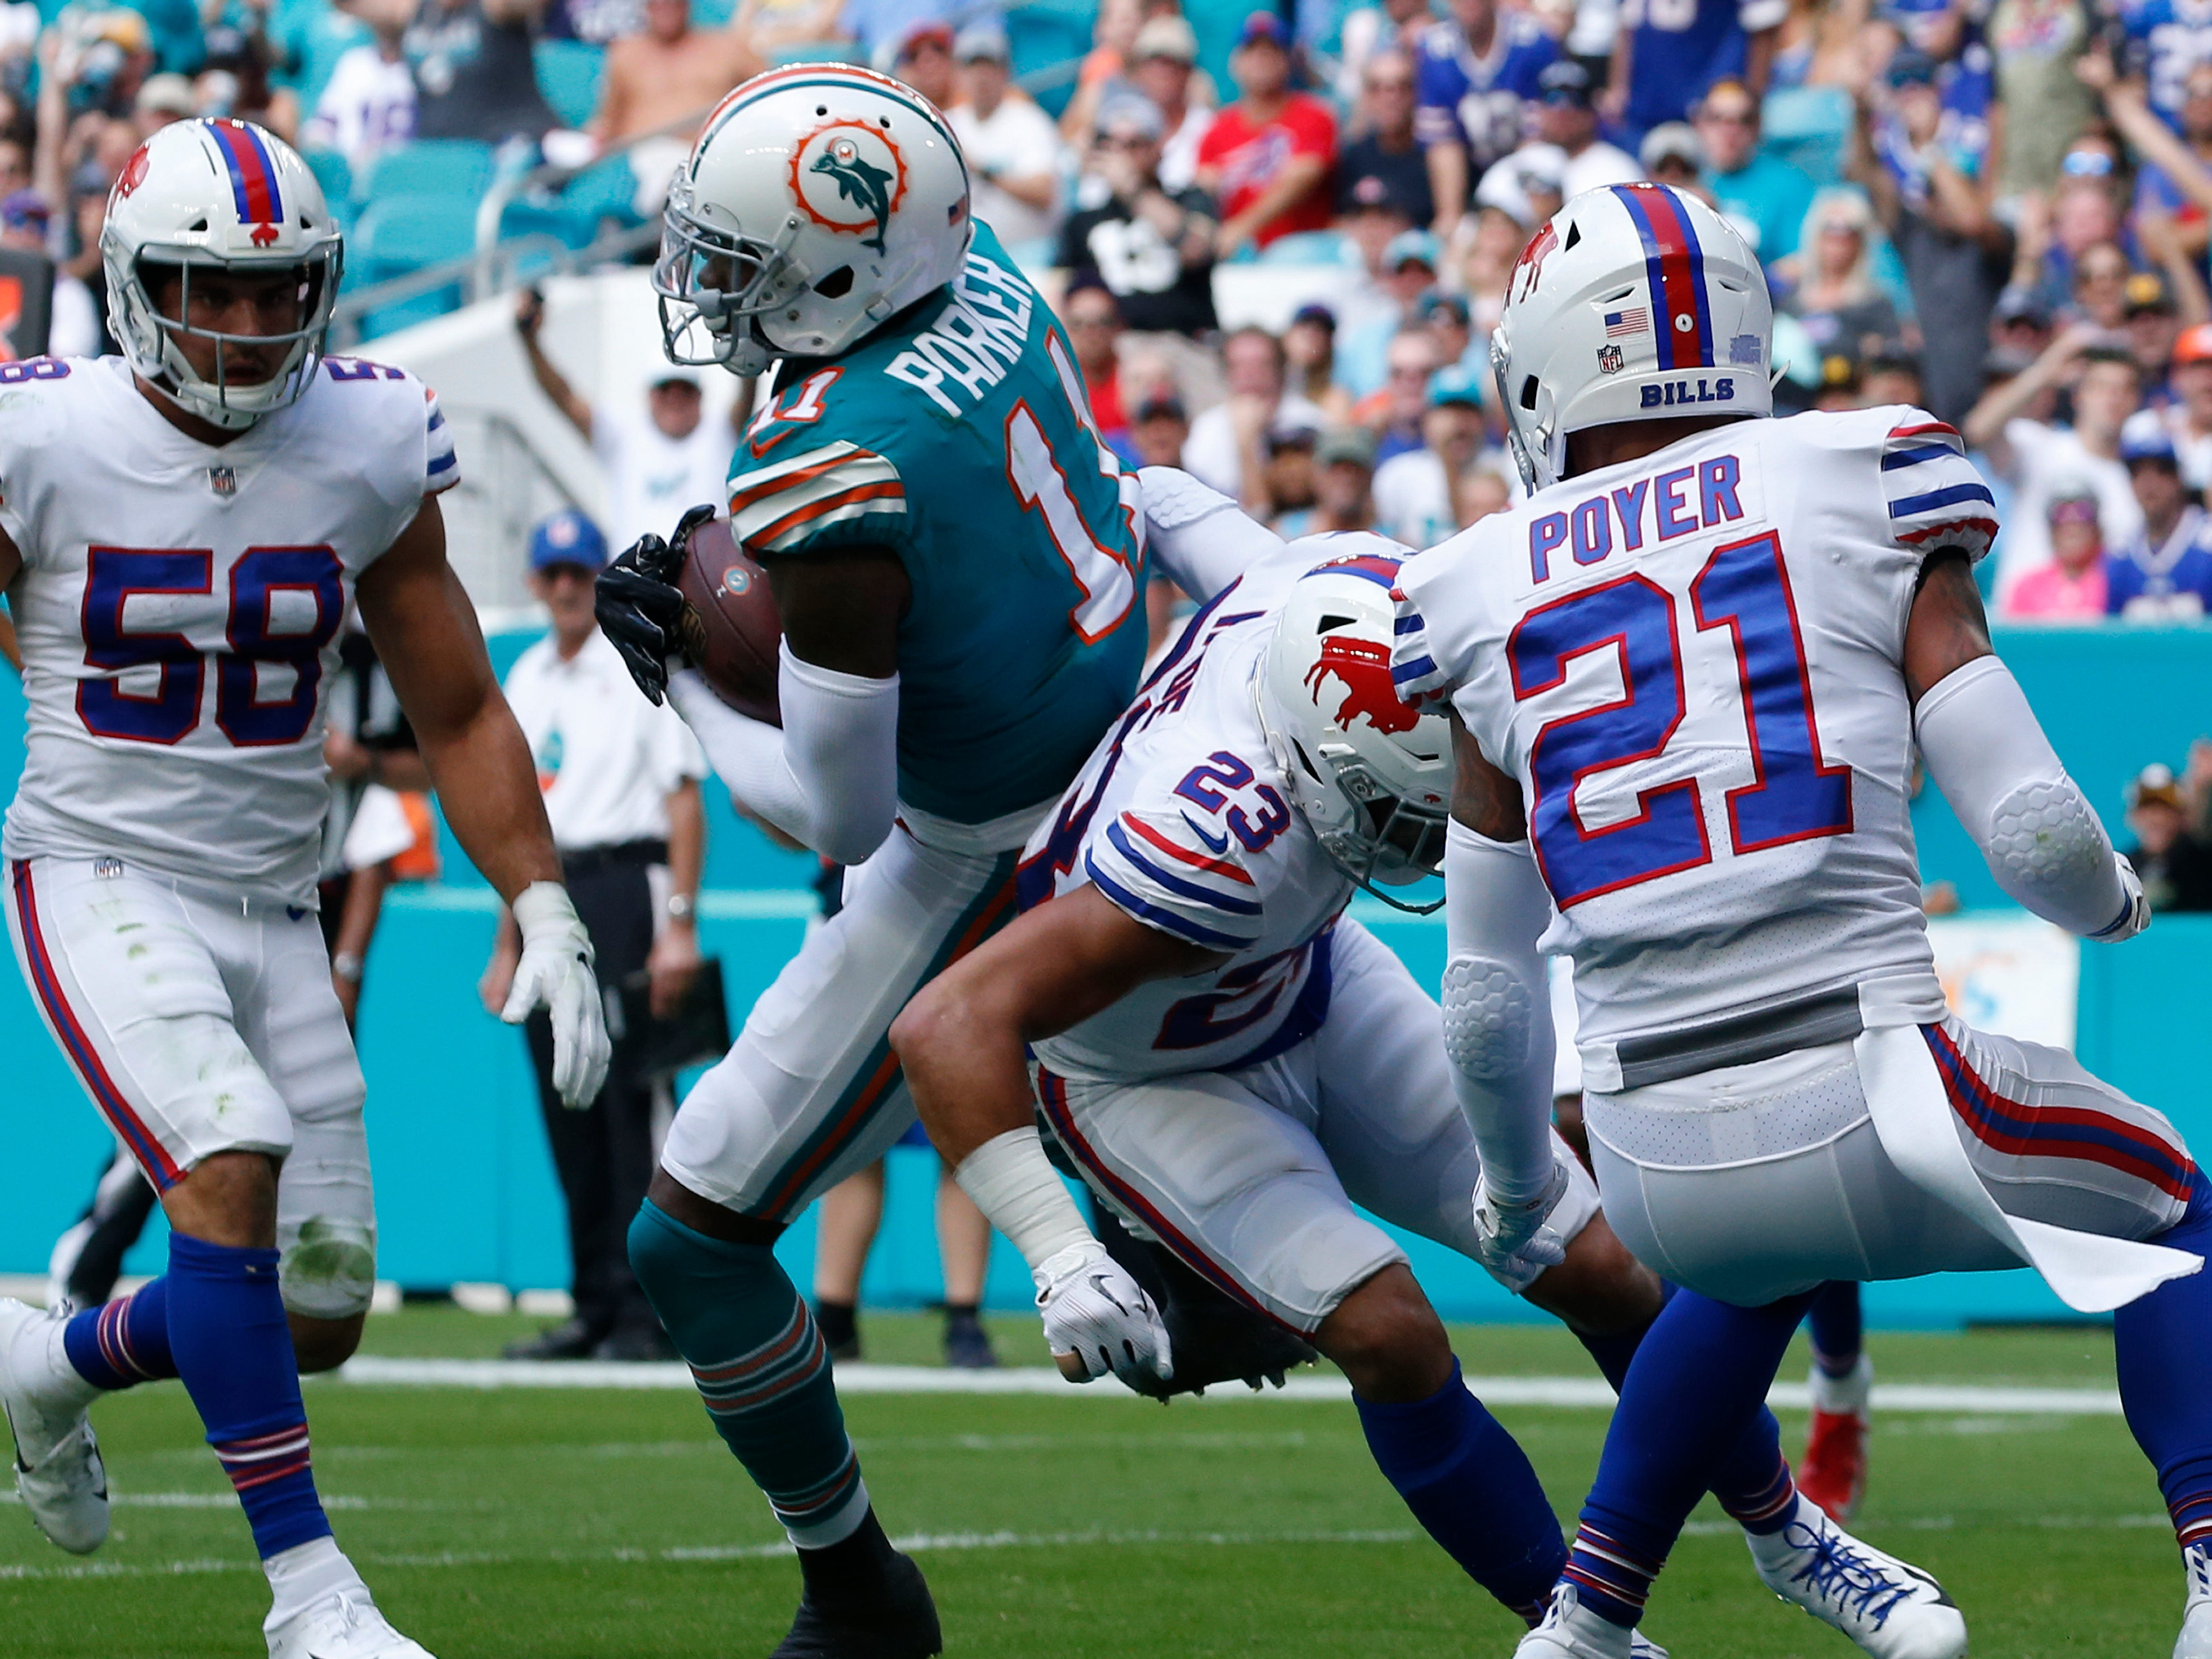 Miami Dolphins wide receiver DeVante Parker (11) catches a pass for a touchdown over Buffalo Bills strong safeties Micah Hyde (23) and Jordan Poyer (21), during the first half of an NFL football game, Sunday, Dec. 2, 2018, in Miami Gardens, Fla. To the left is Buffalo Bills outside linebacker Matt Milano (58). (AP Photo/Joel Auerbach)